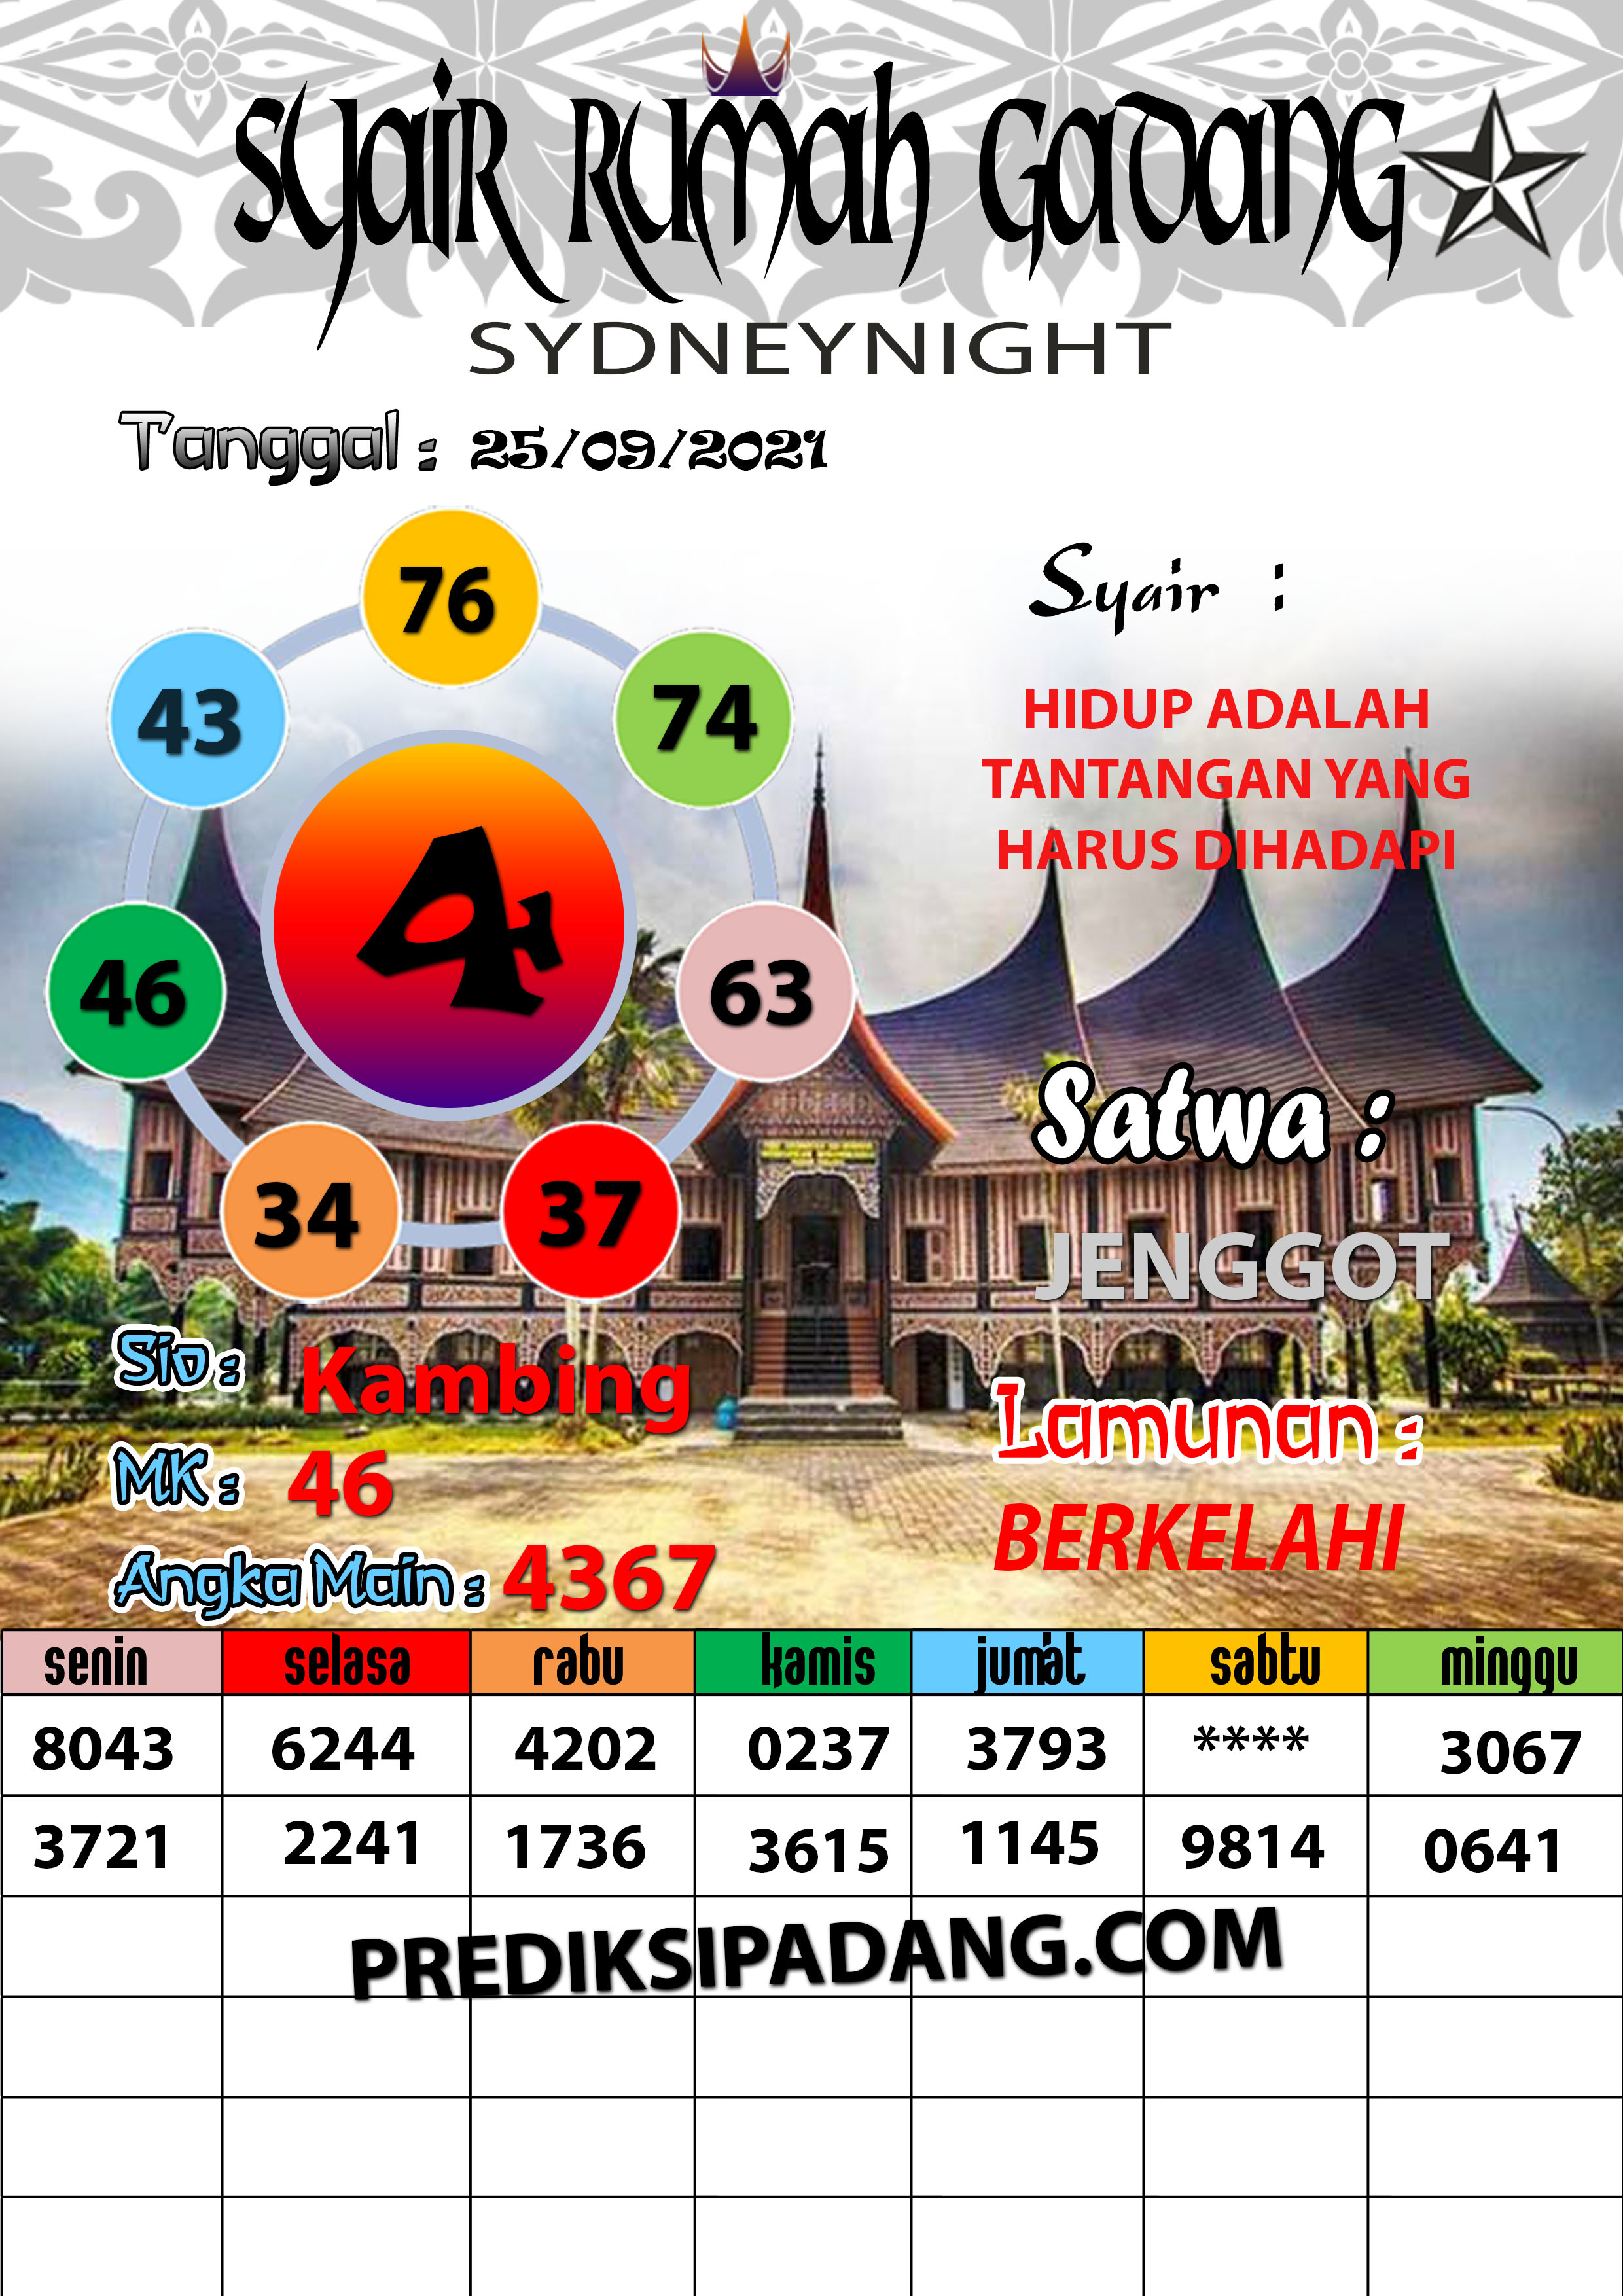 PADANG%20TOTO%20SIDNEYNIGHT-Recovered-Recovered.jpg